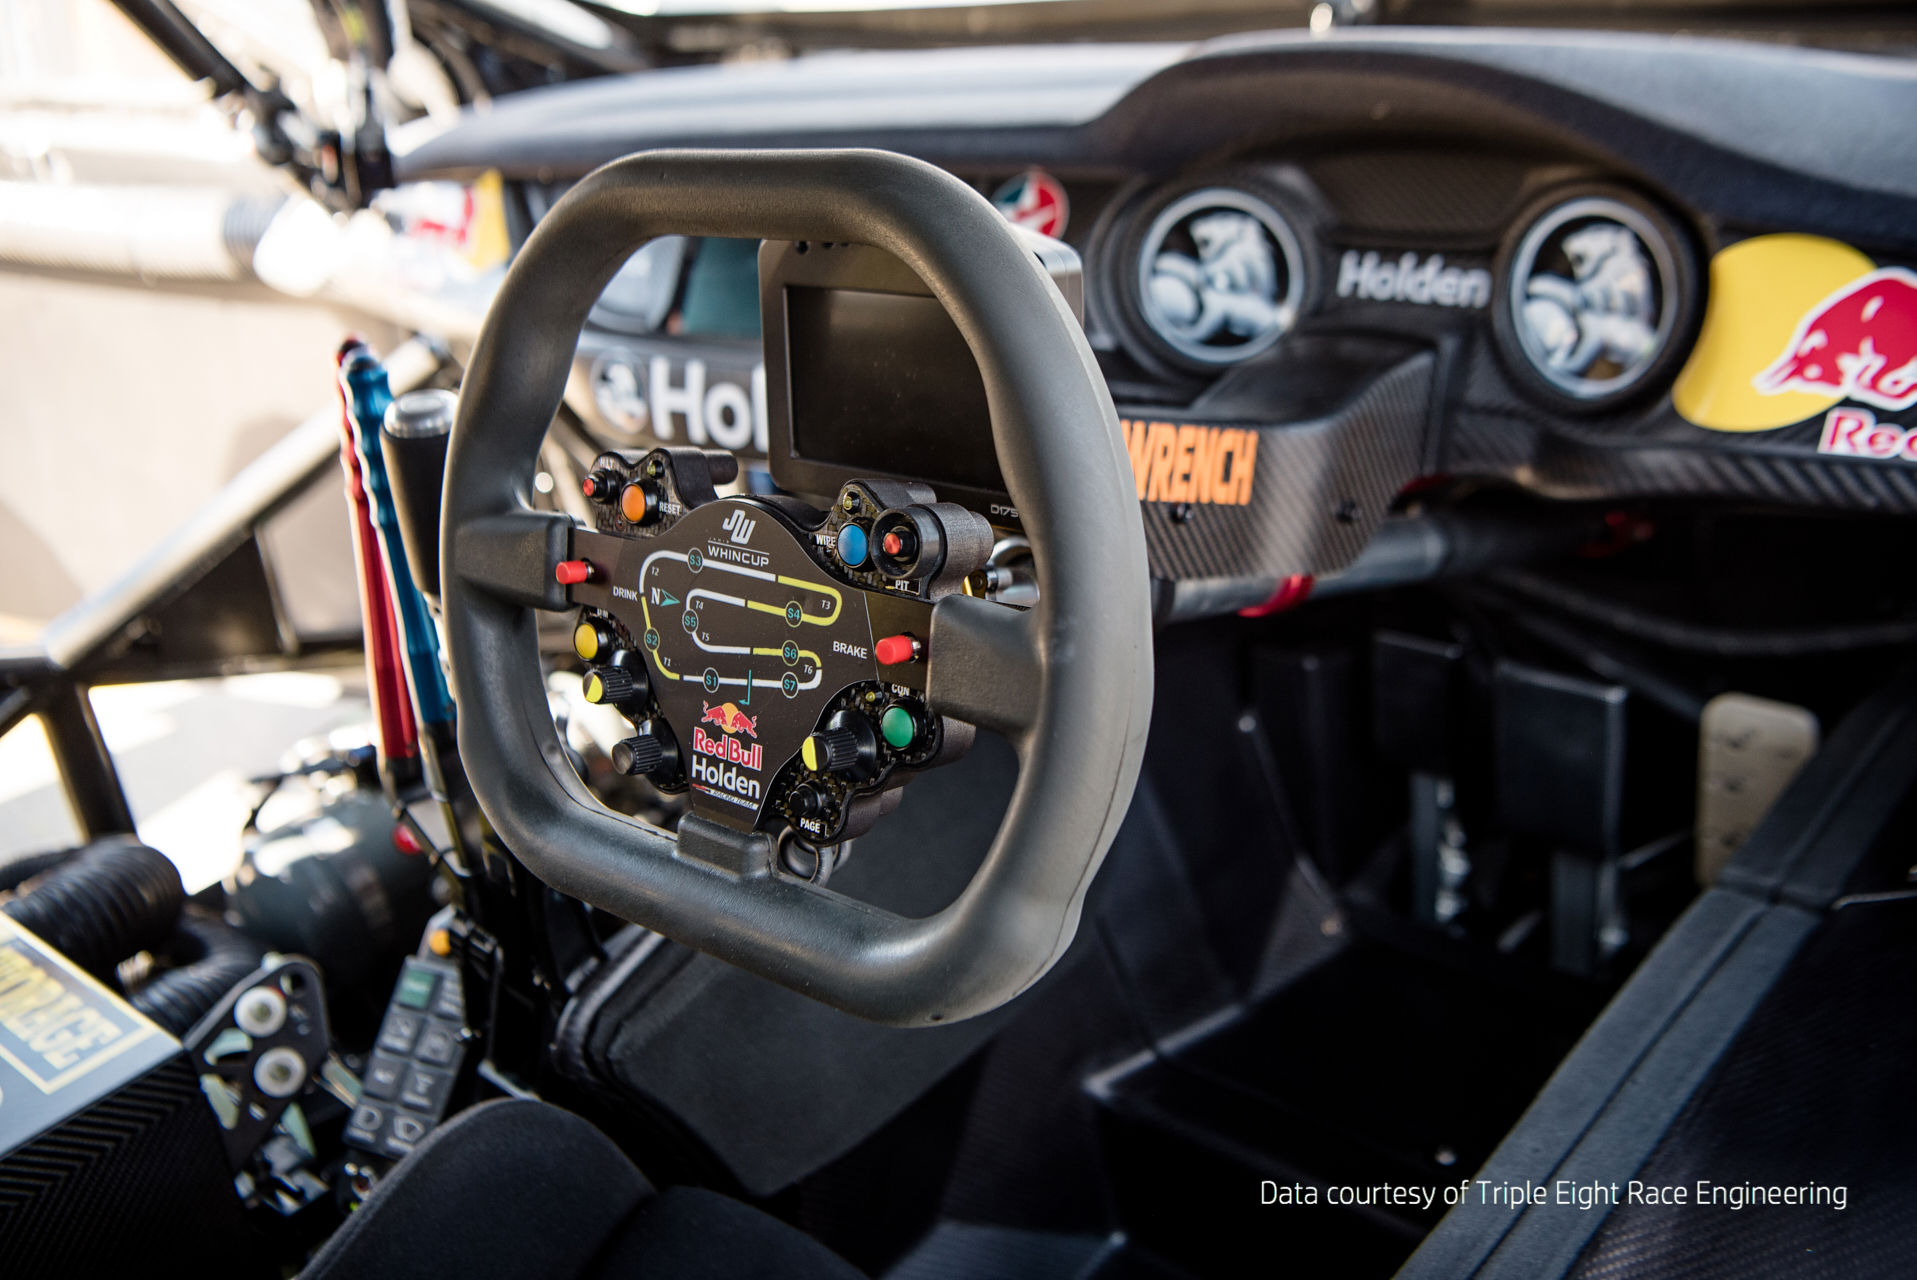 Steering wheel with 3D printed parts. Photo via Triple Eight Race Engineering.